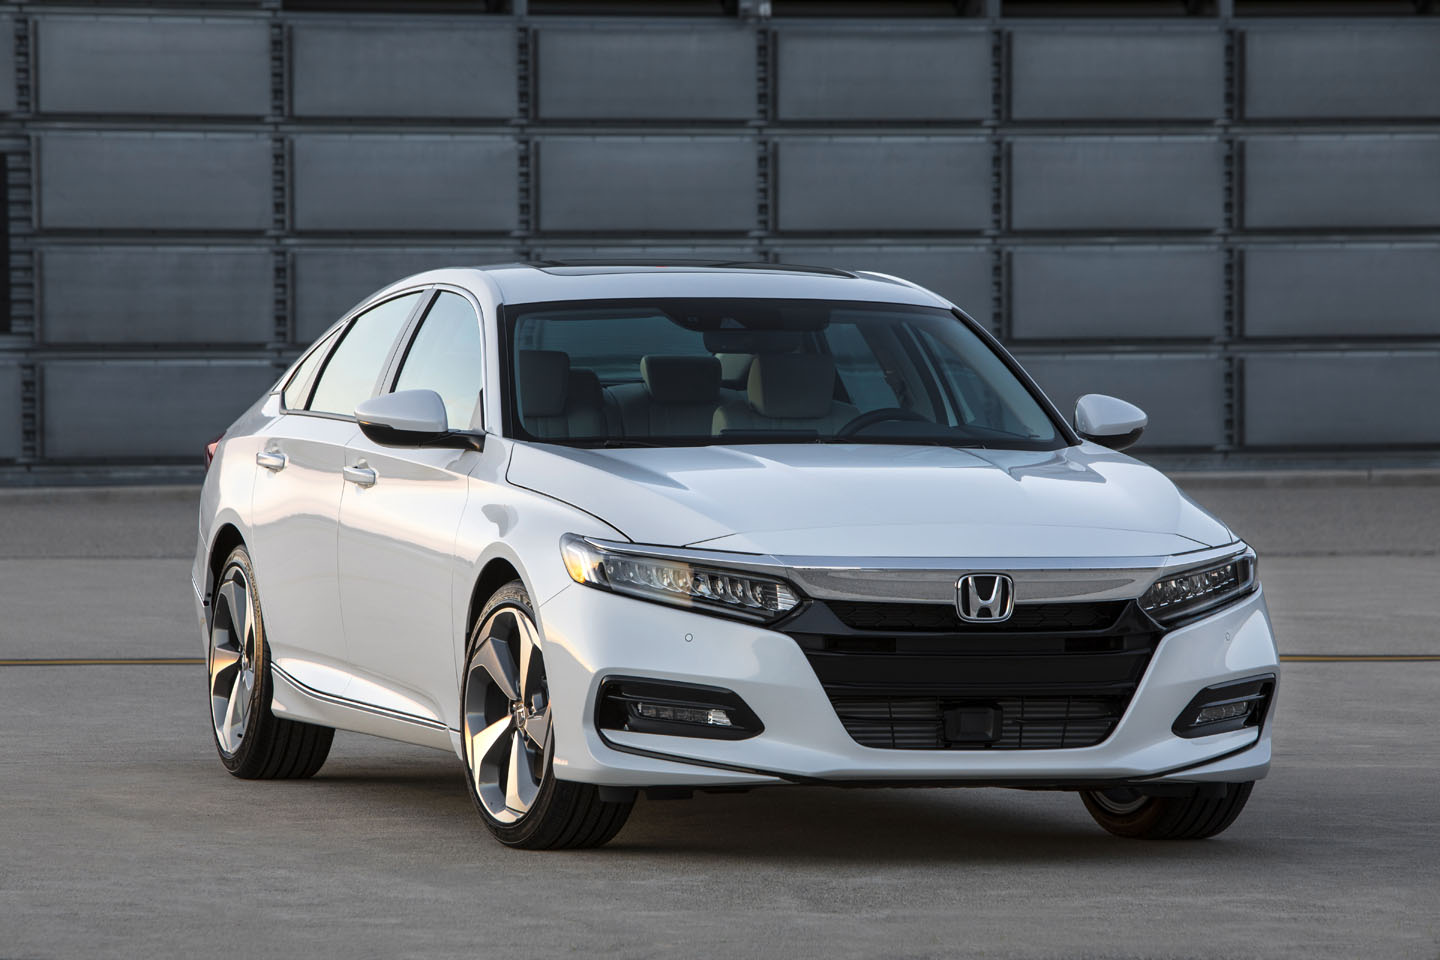 Next generation 2018 honda accord unmasked for Honda accord generations